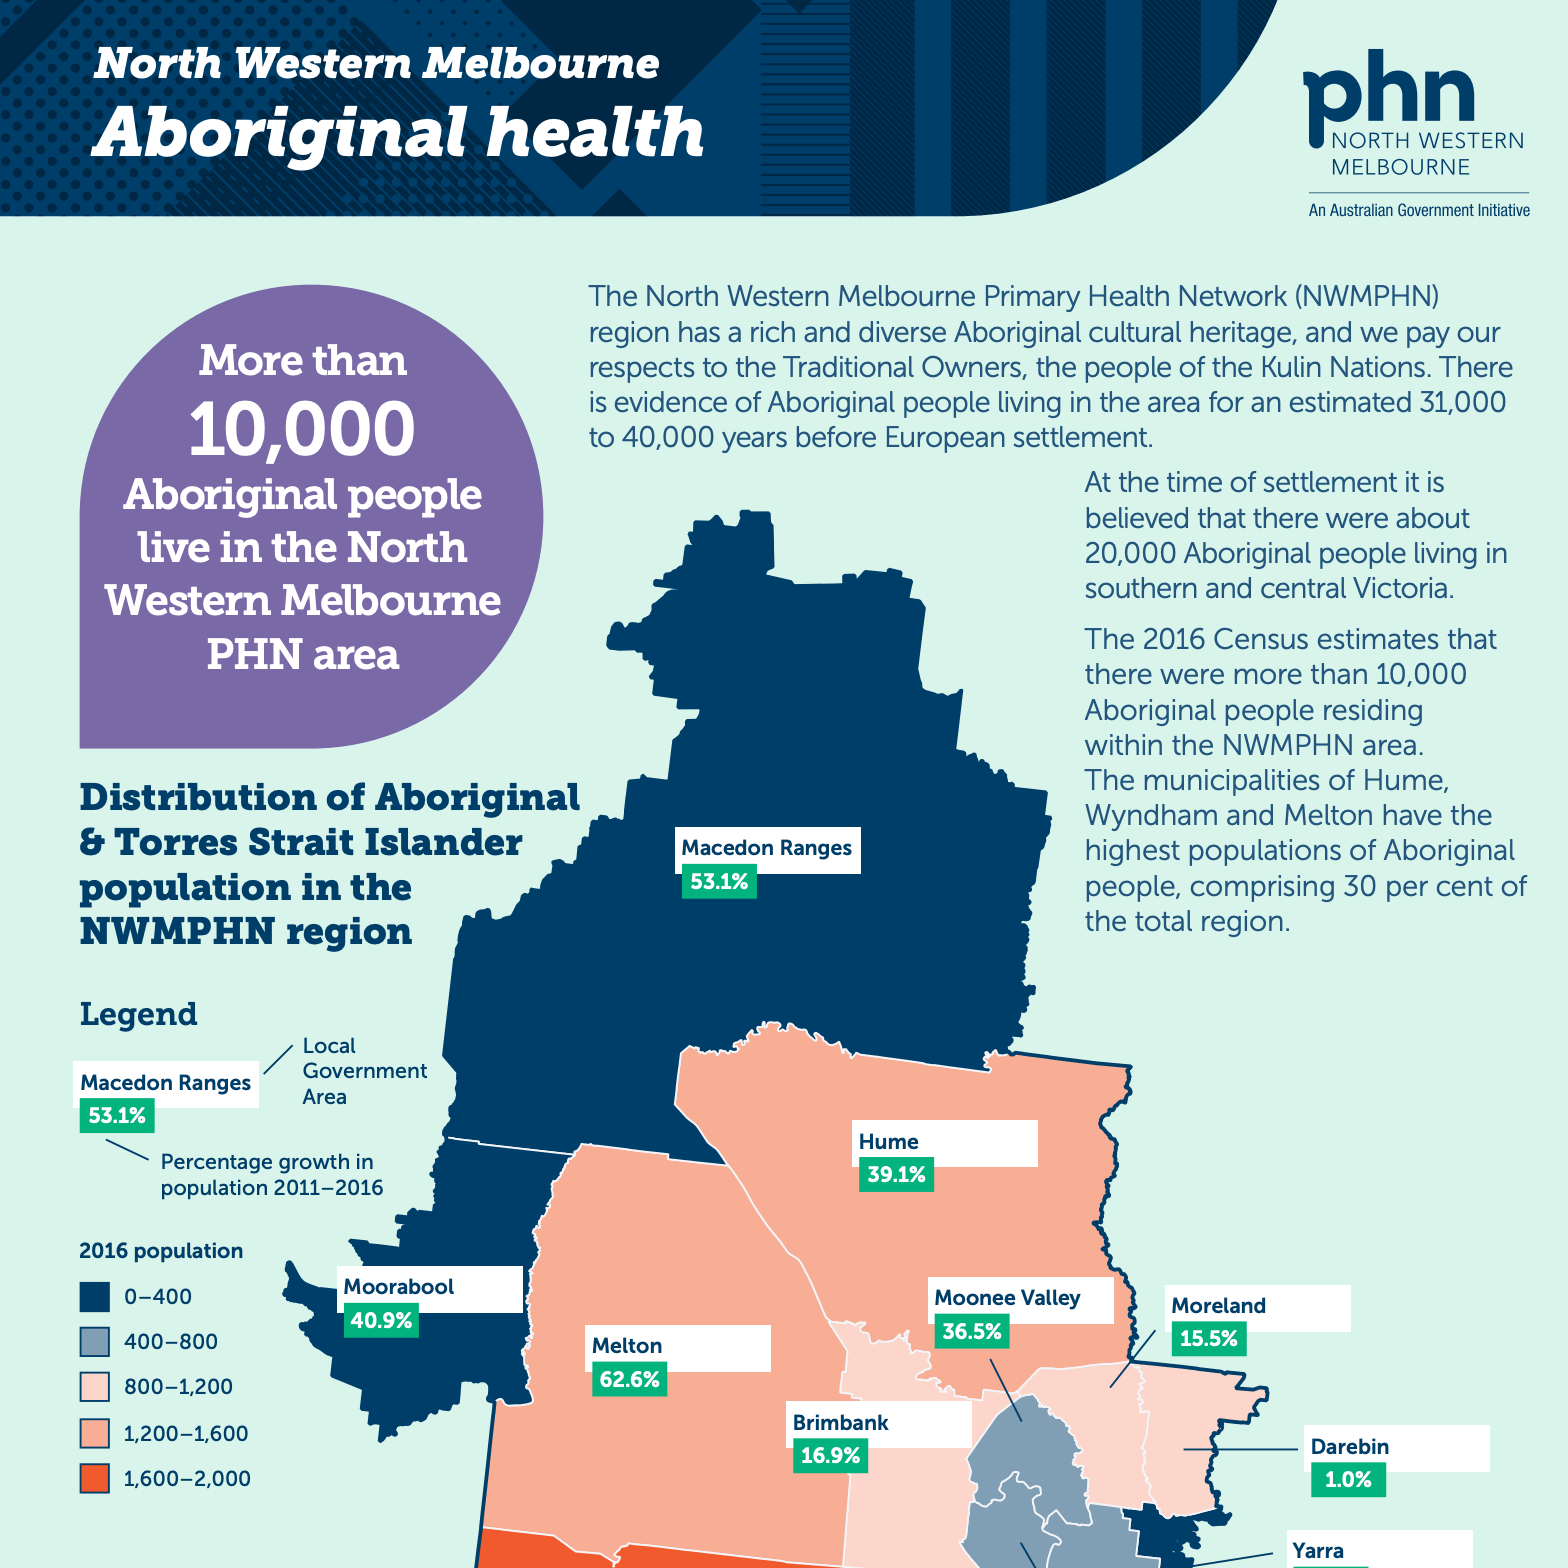 NWMPHN Aboriginal health infographic